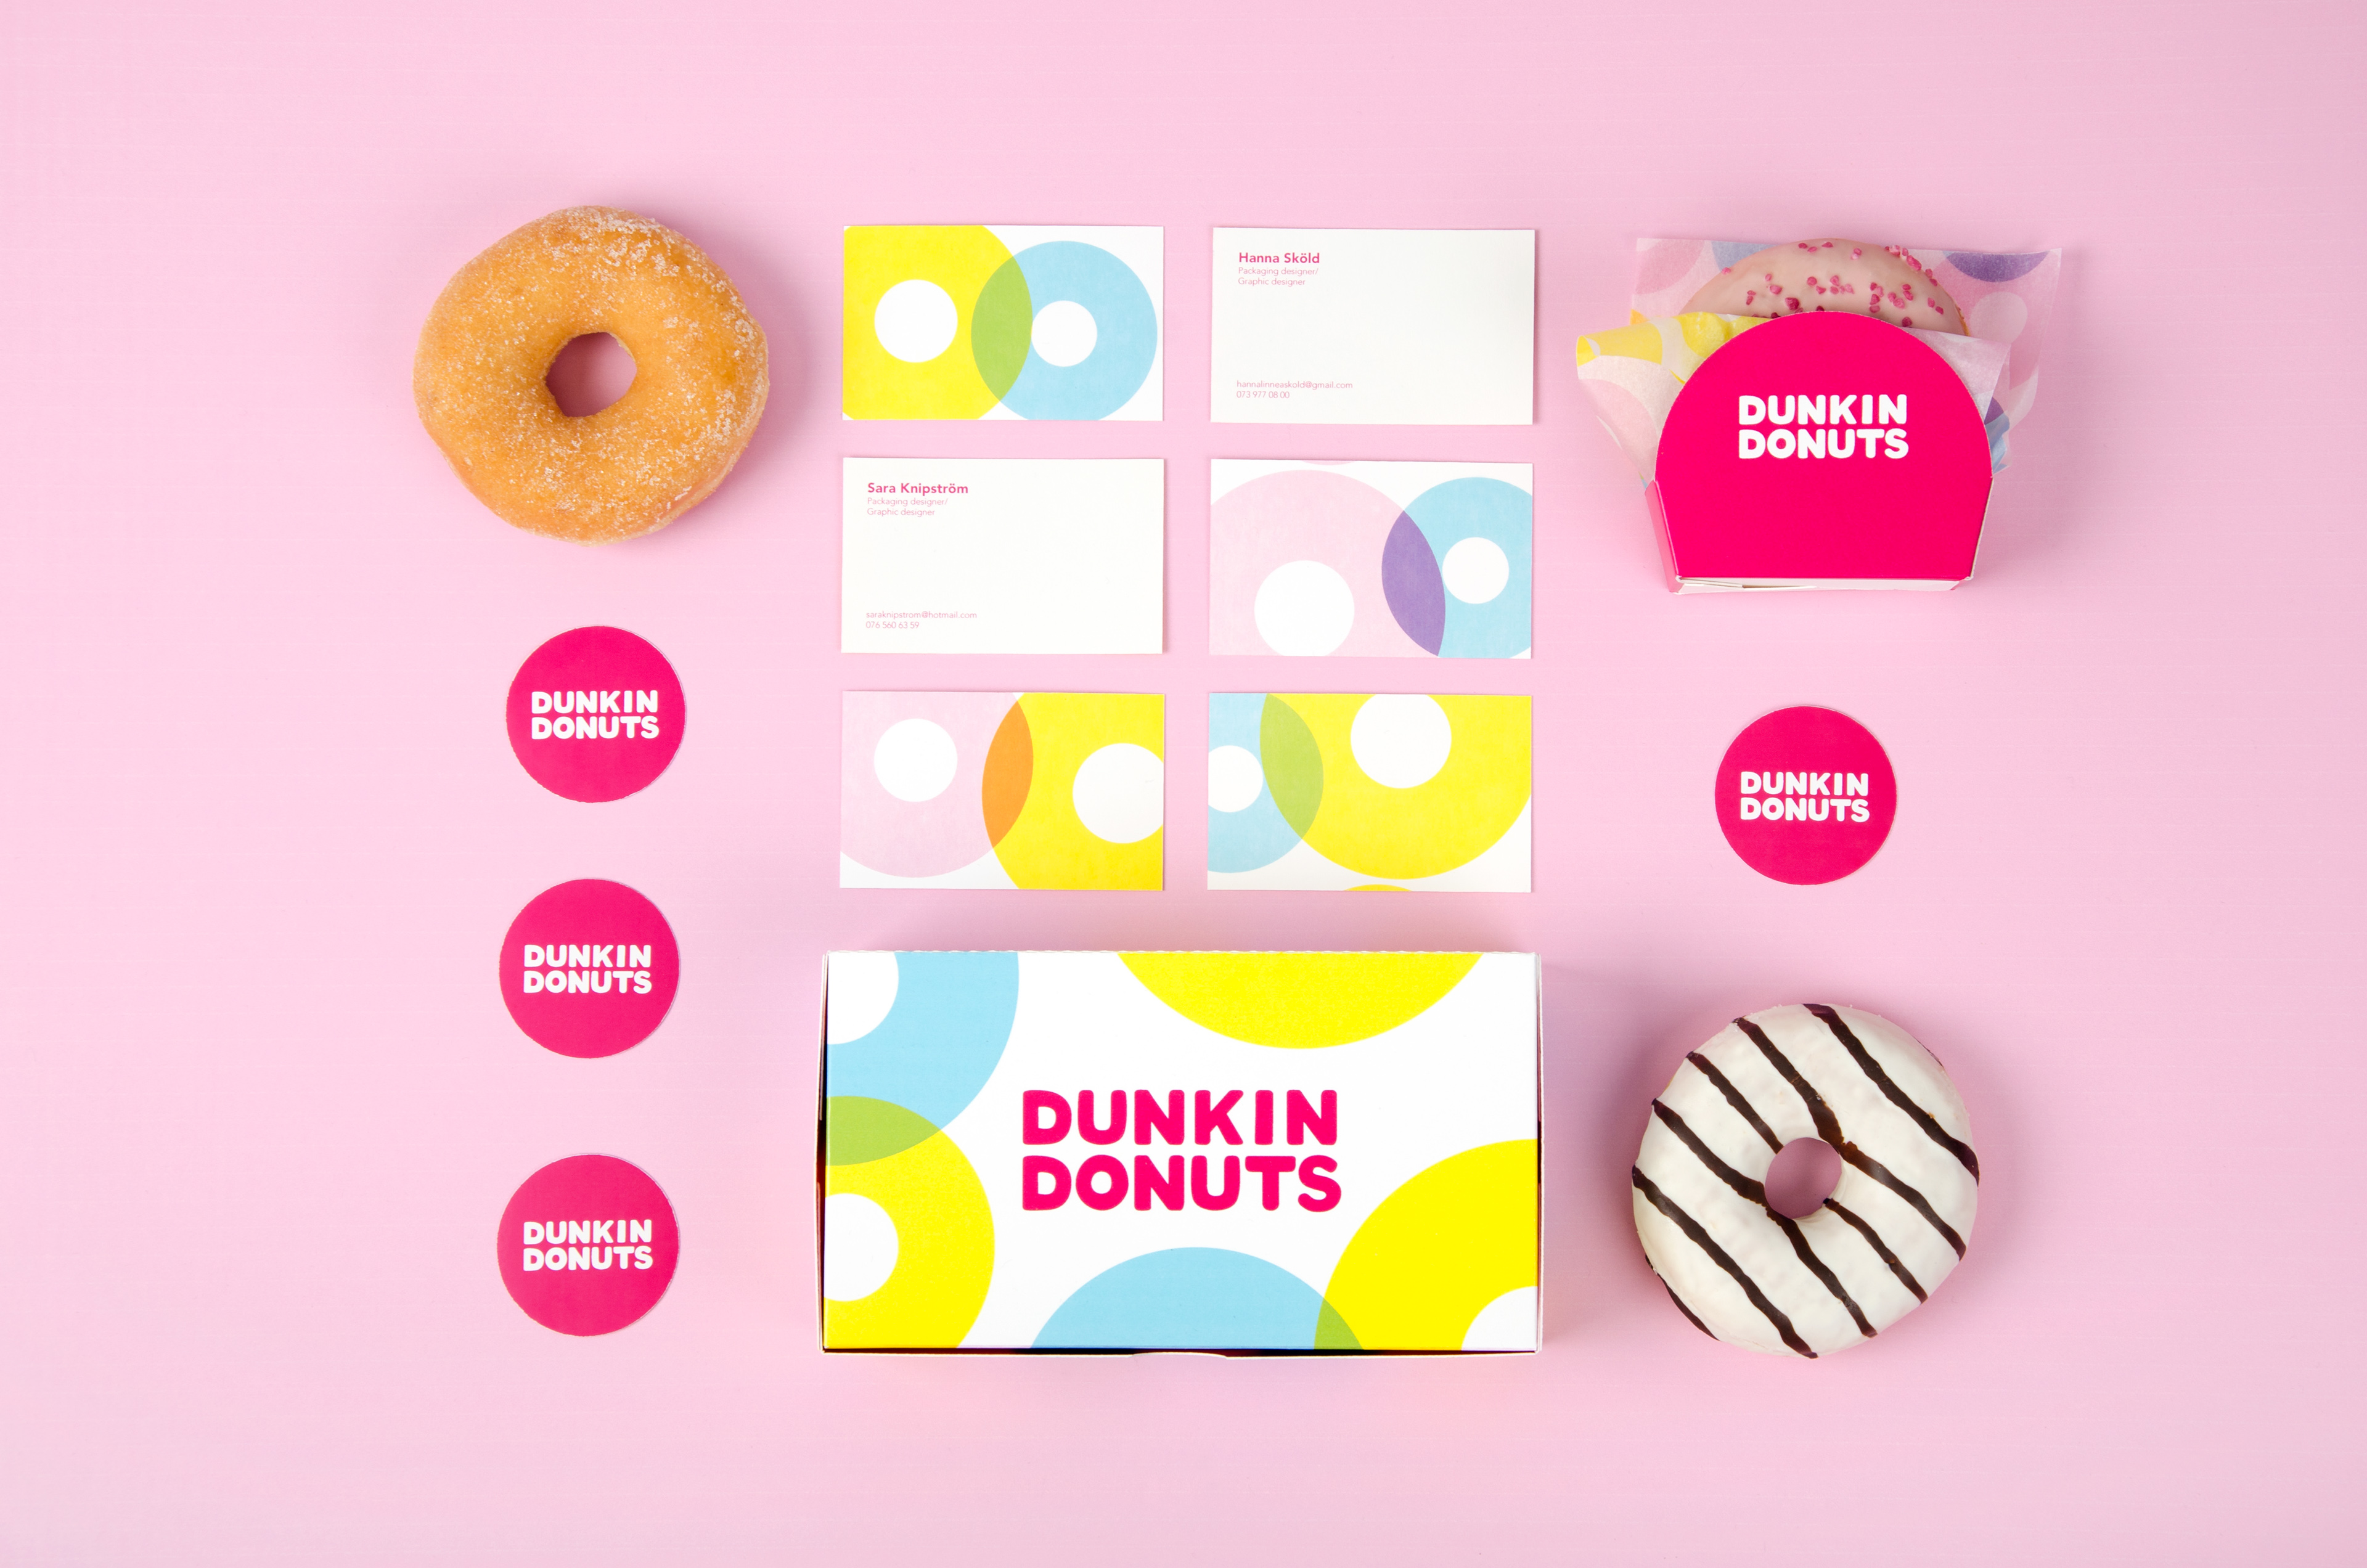 Dunkin Donuts on Behance